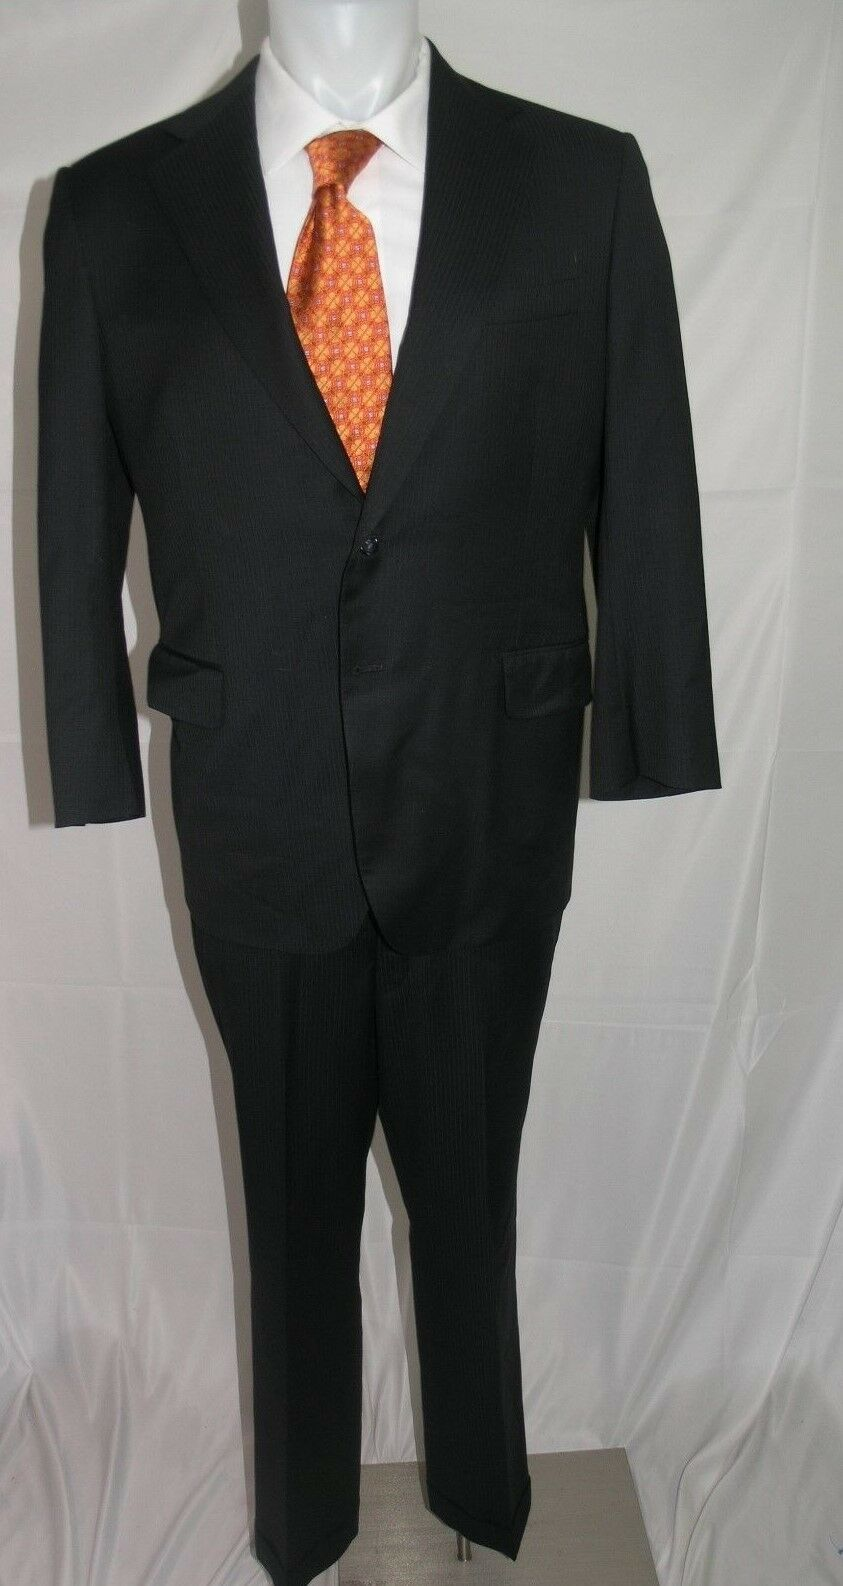 Maurizio of Fifth Ave Bespoke Two Button Flat Front Suit 42 R 36 x 29